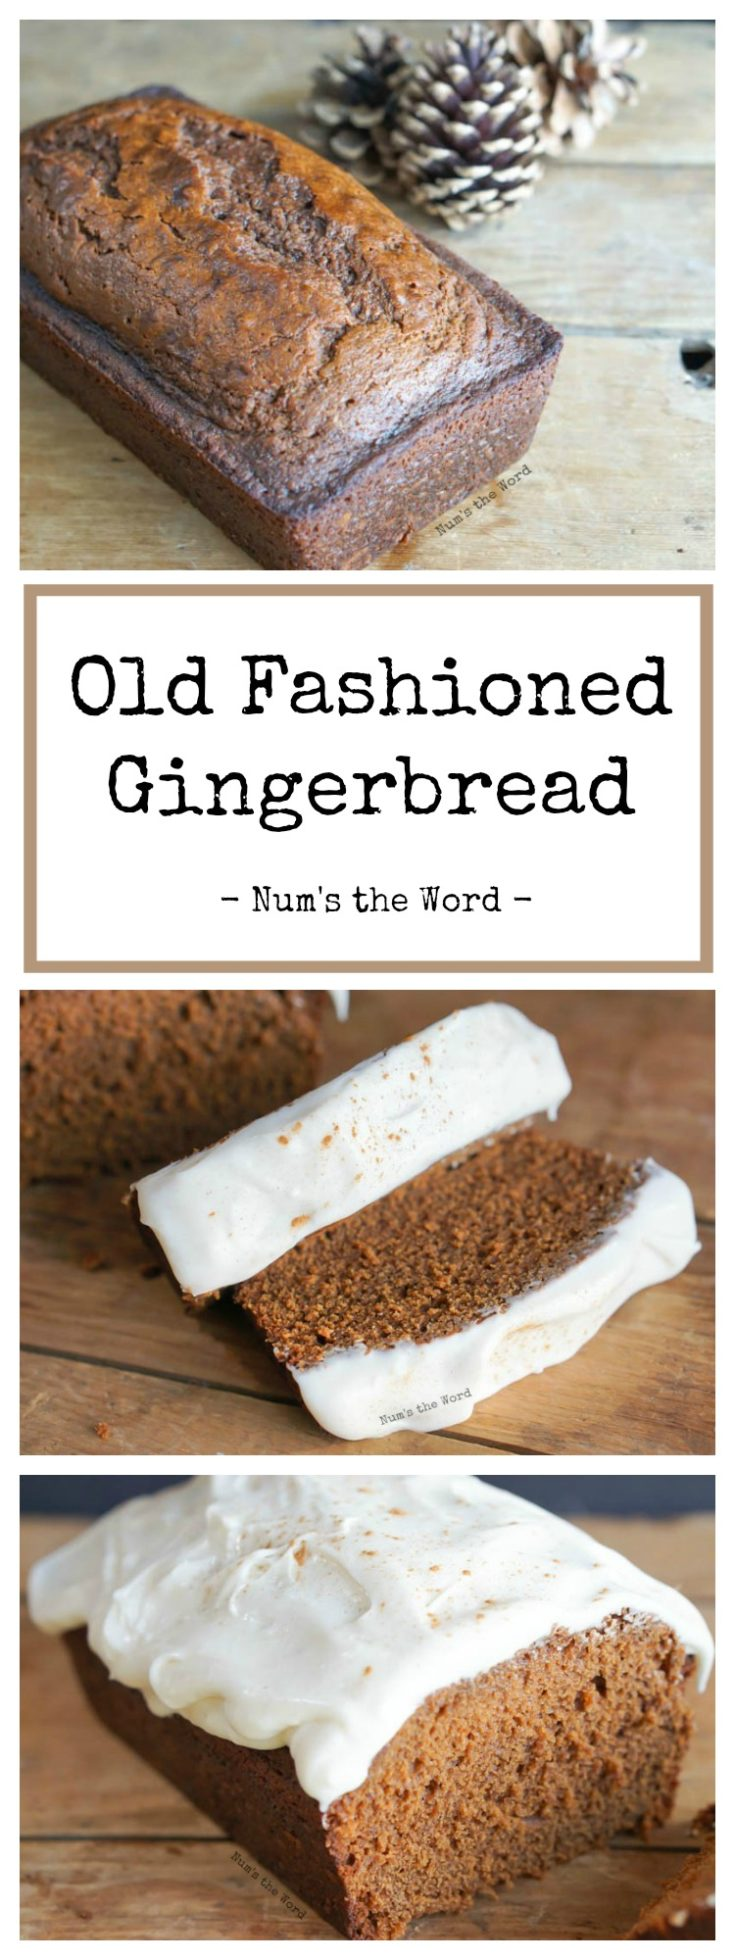 This Old Fashioned Gingerbread has been passed down through the generations and is a family favorite! Make it into a bread for breakfast or a cake for dessert, it's perfect all day long! This copycat version of Starbucks Gingerbread will have you skipping the drive through and making it at home.